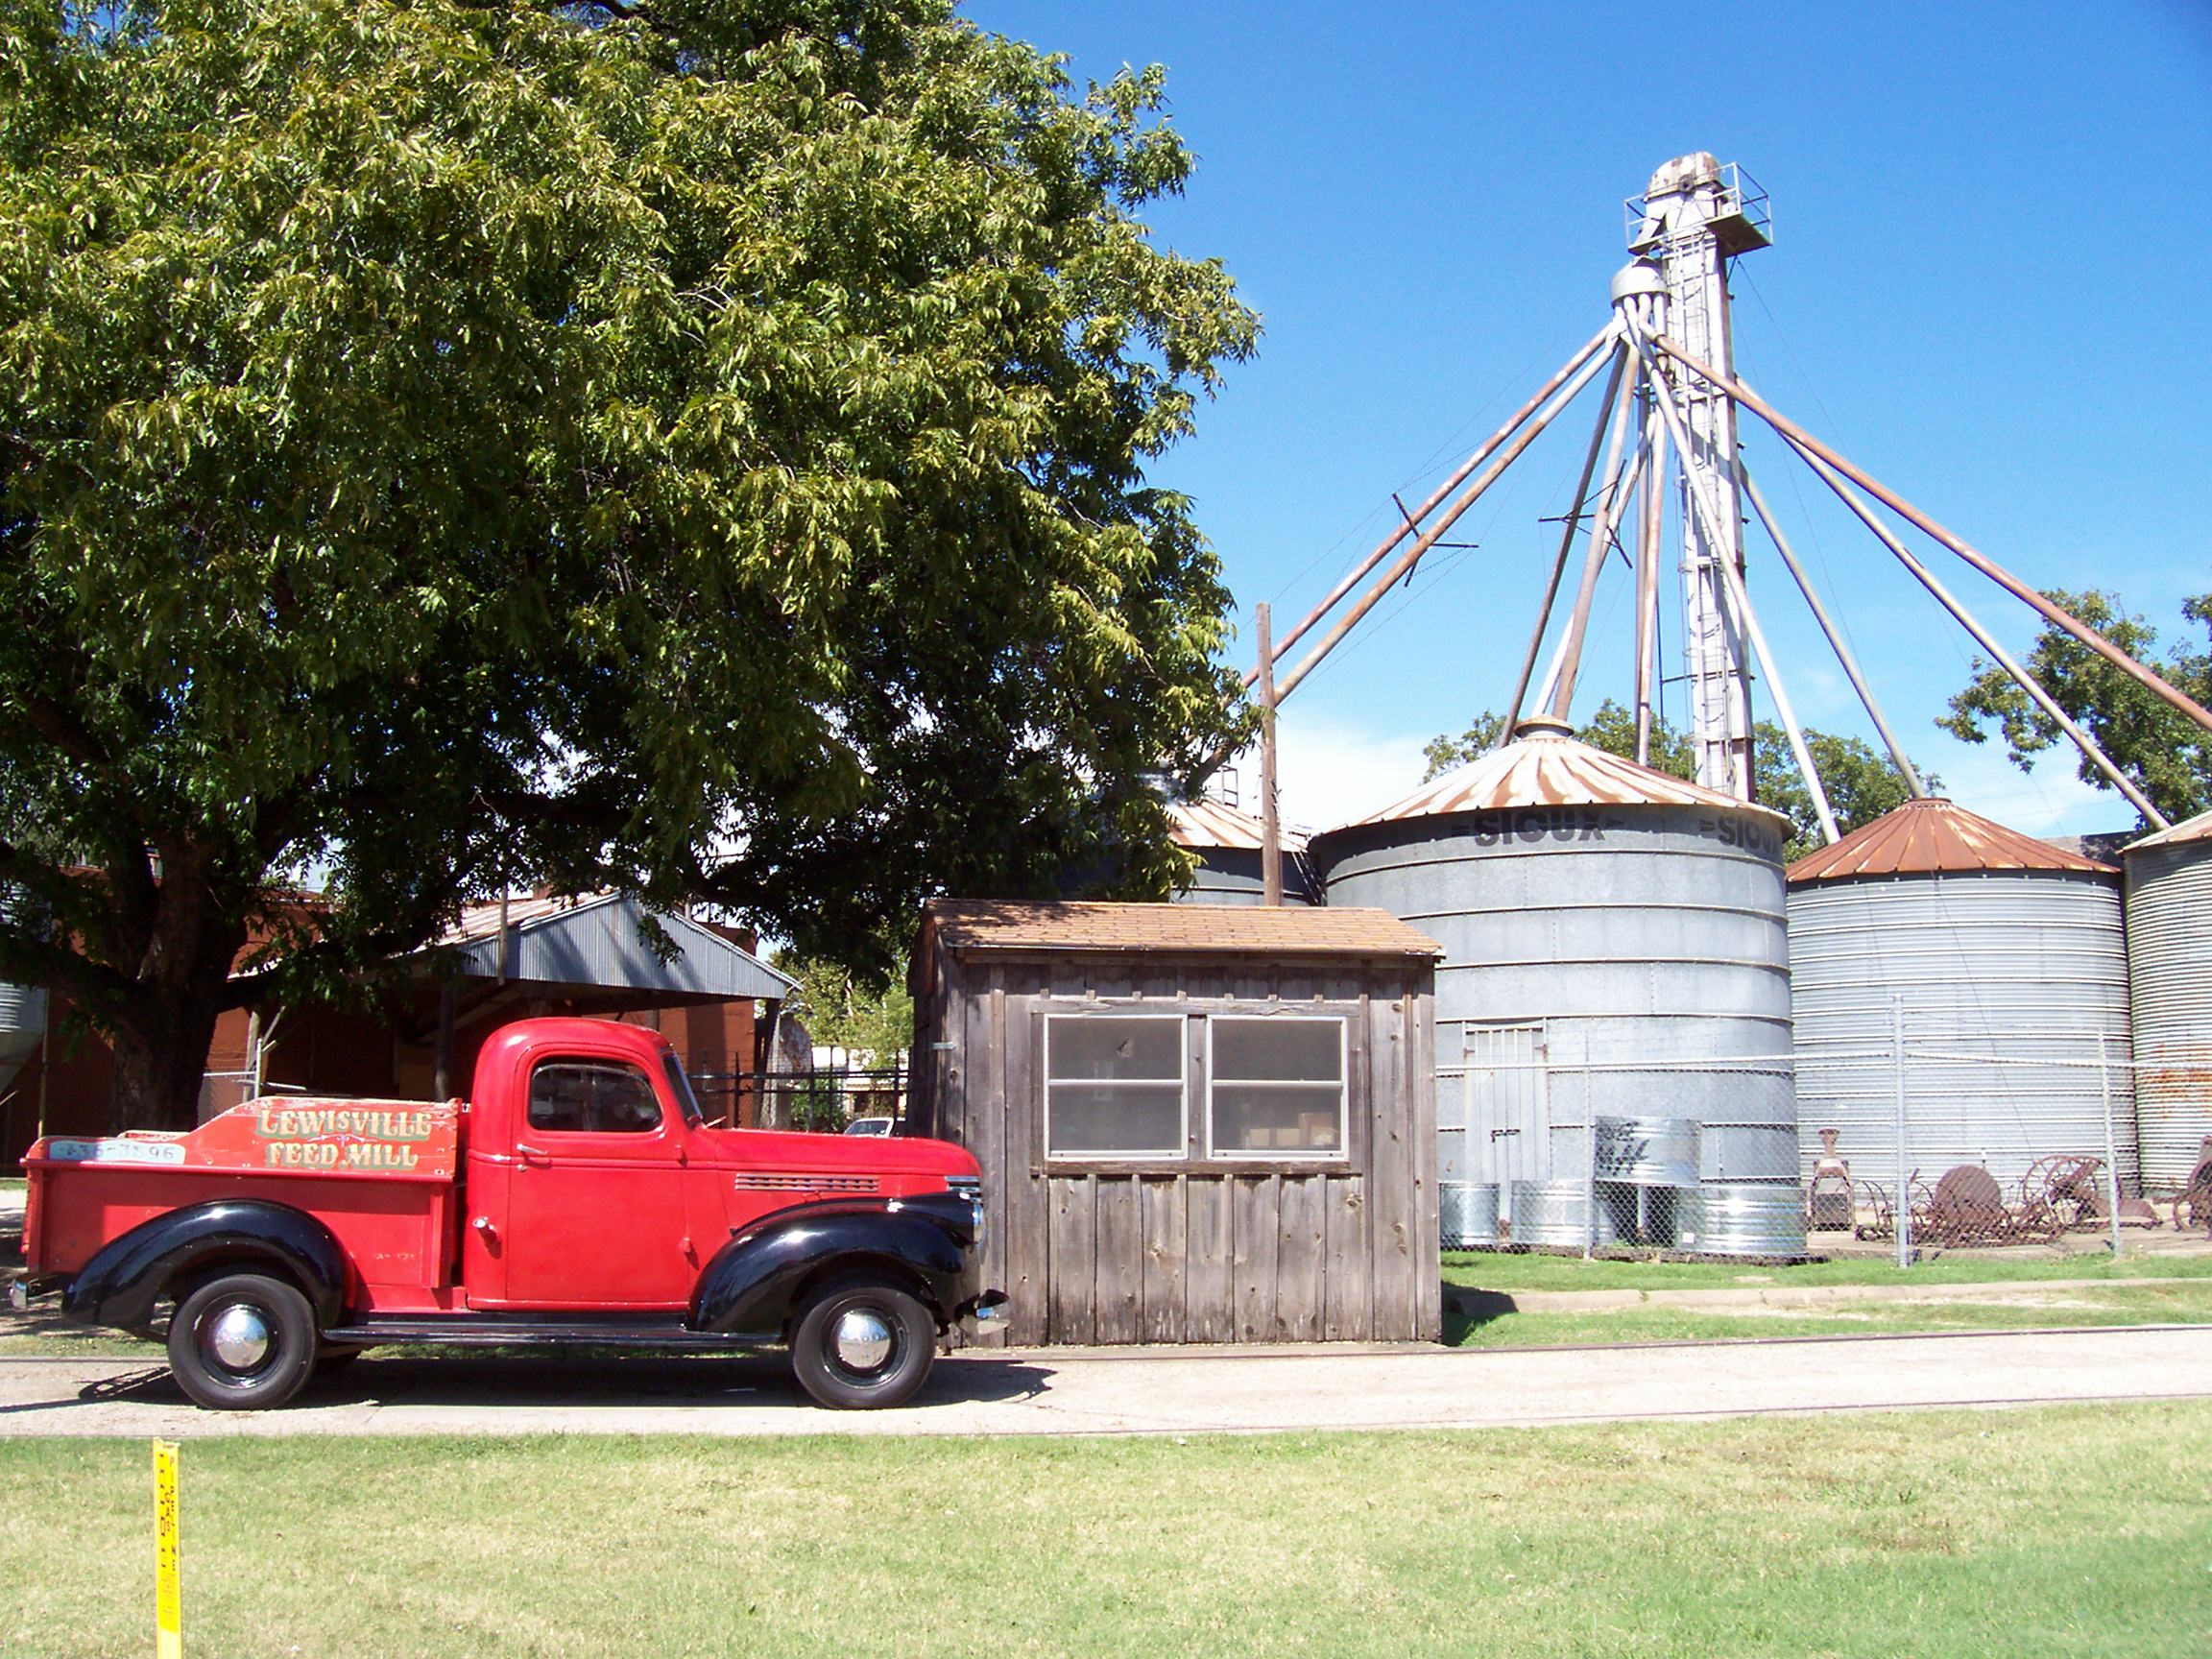 Lewisville Feed Mill